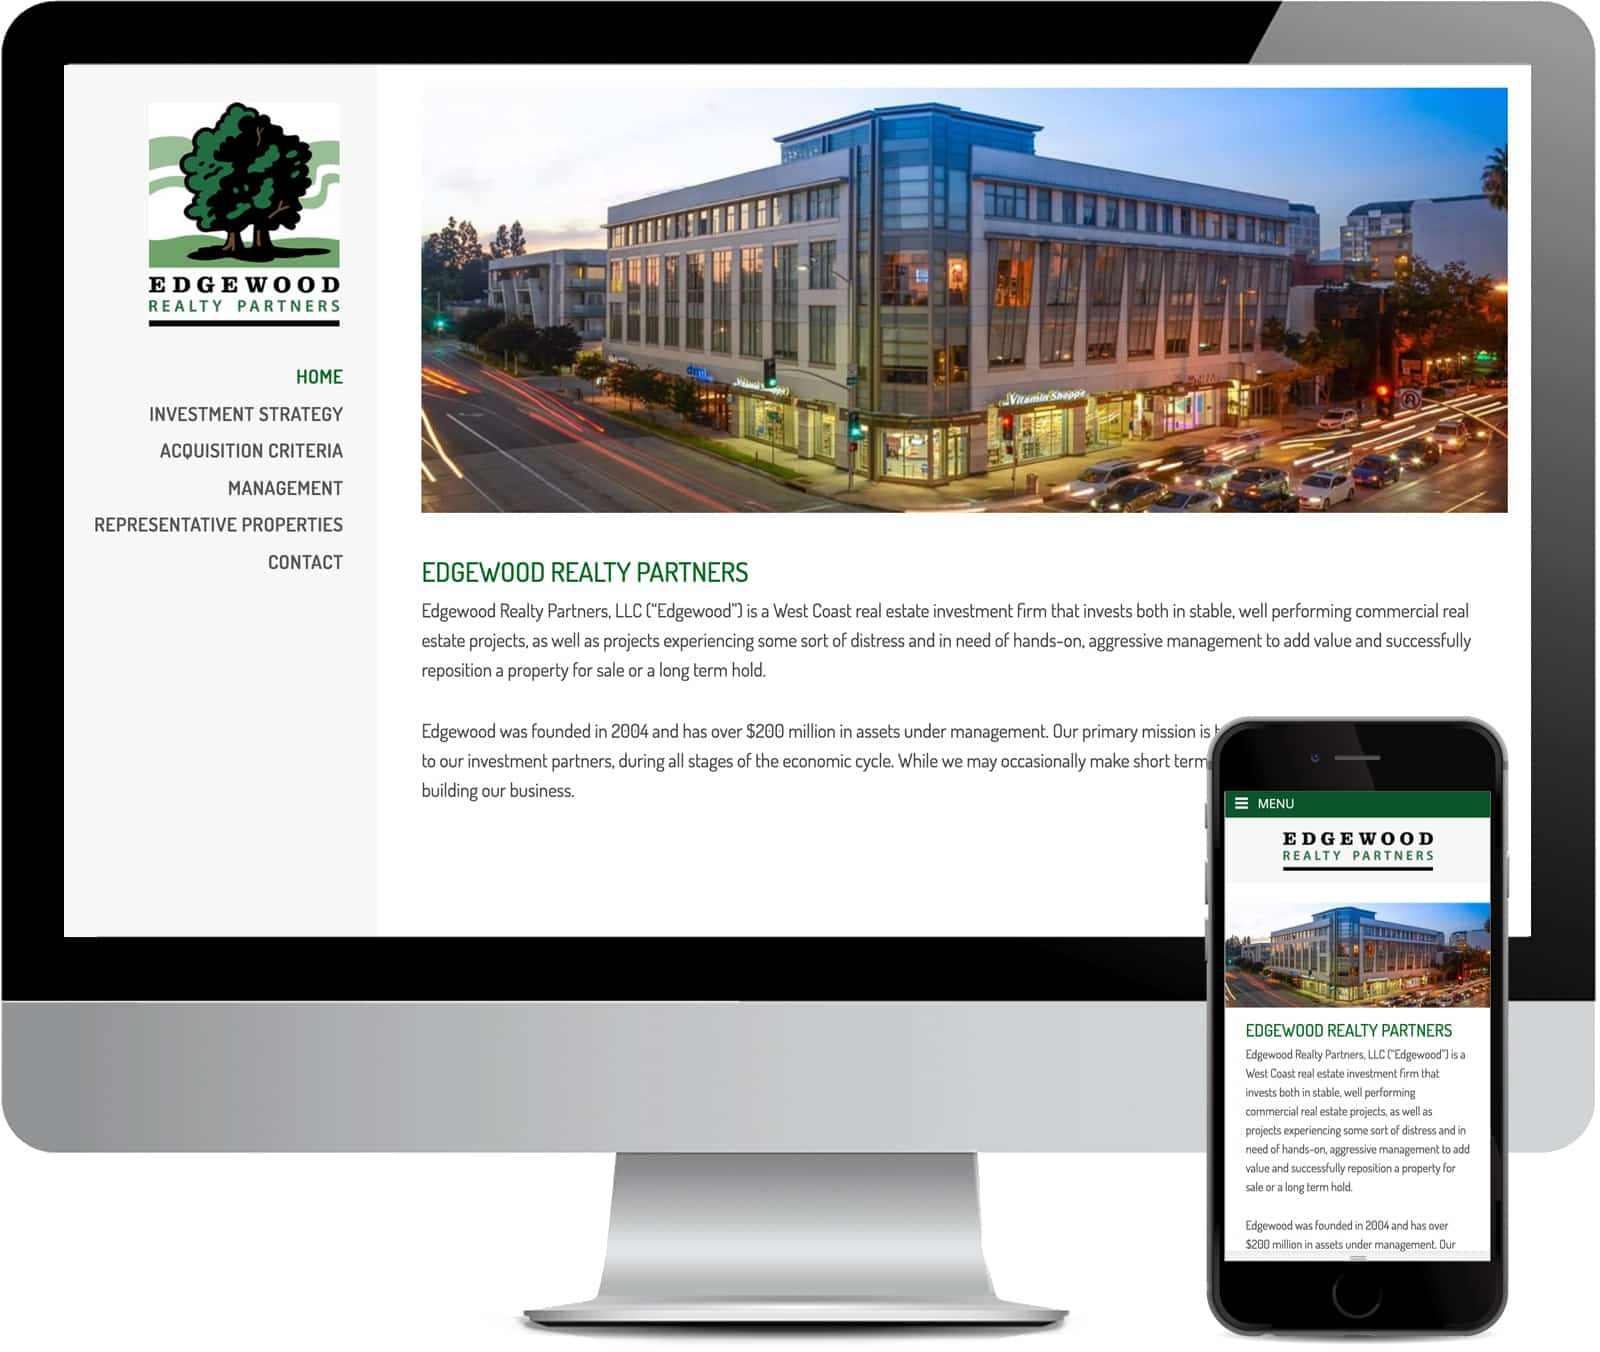 Edgewood Realty Partners Website